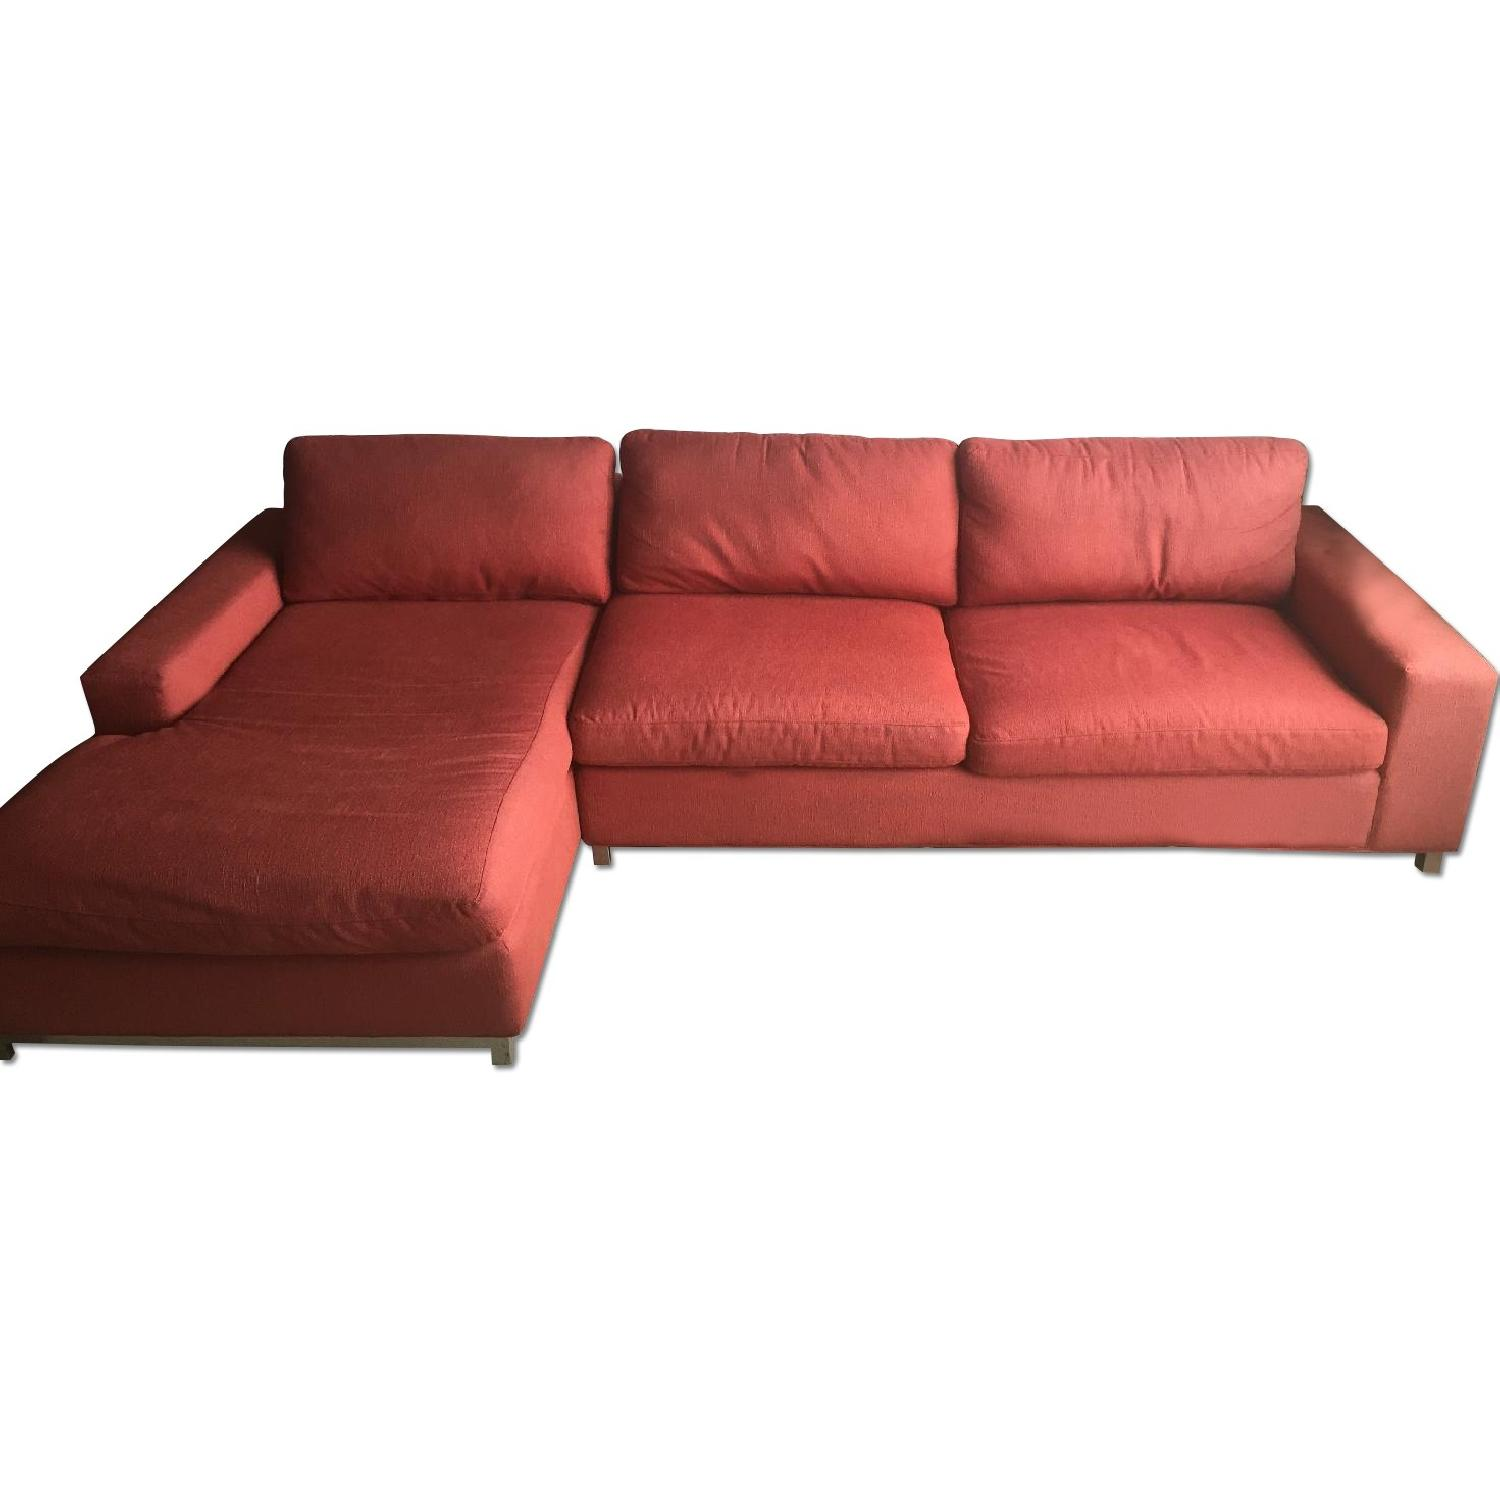 Room & Board Klein Collection Sectional - image-0